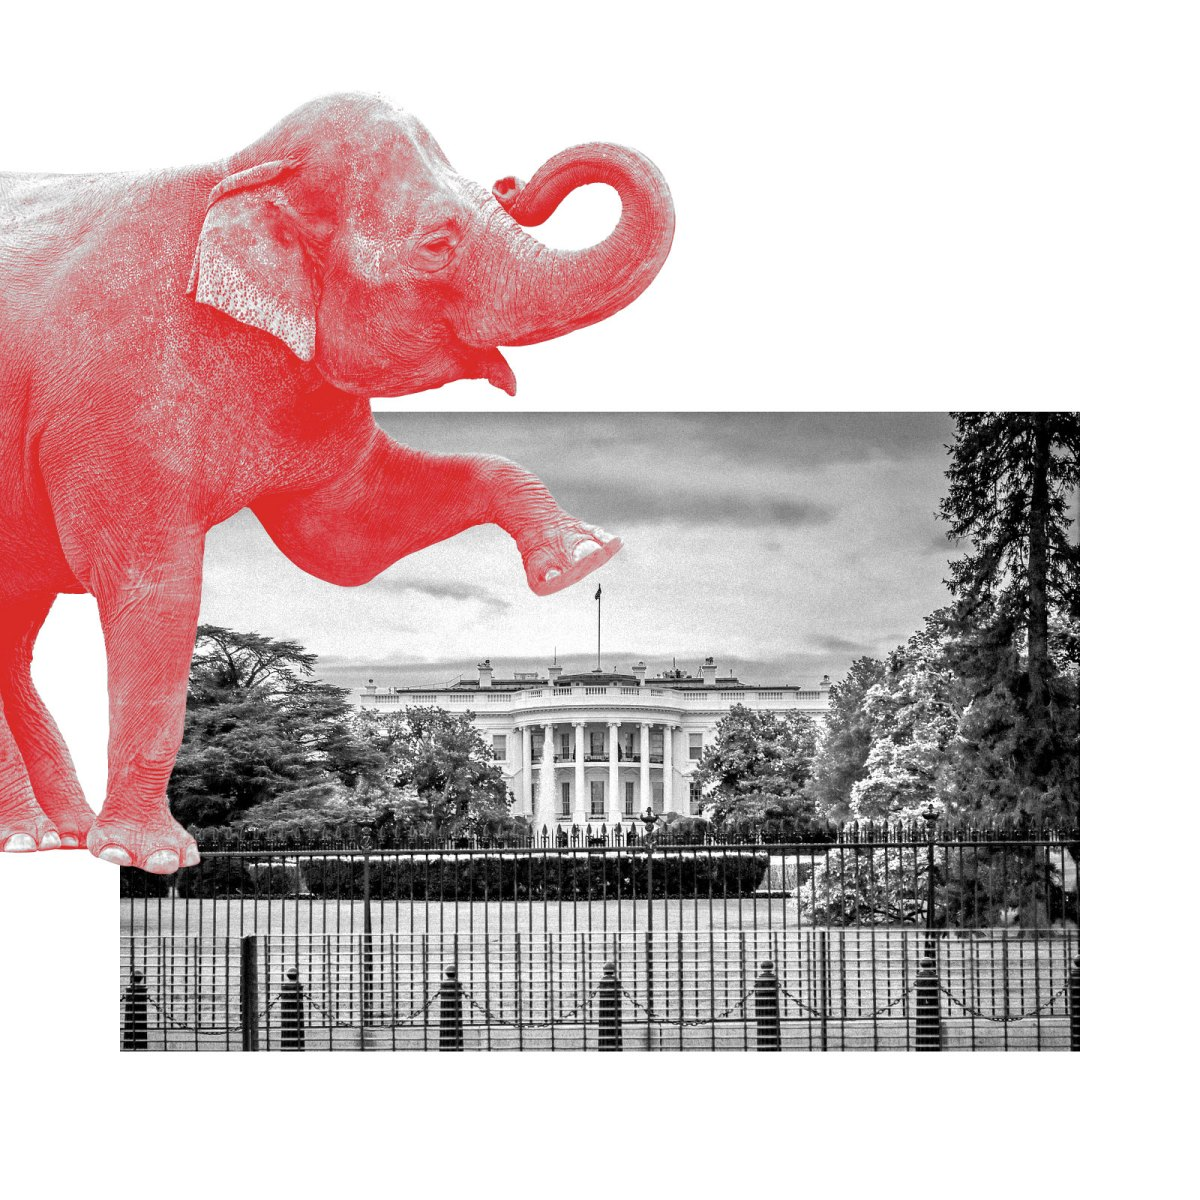 A red elephant stomping on the White House